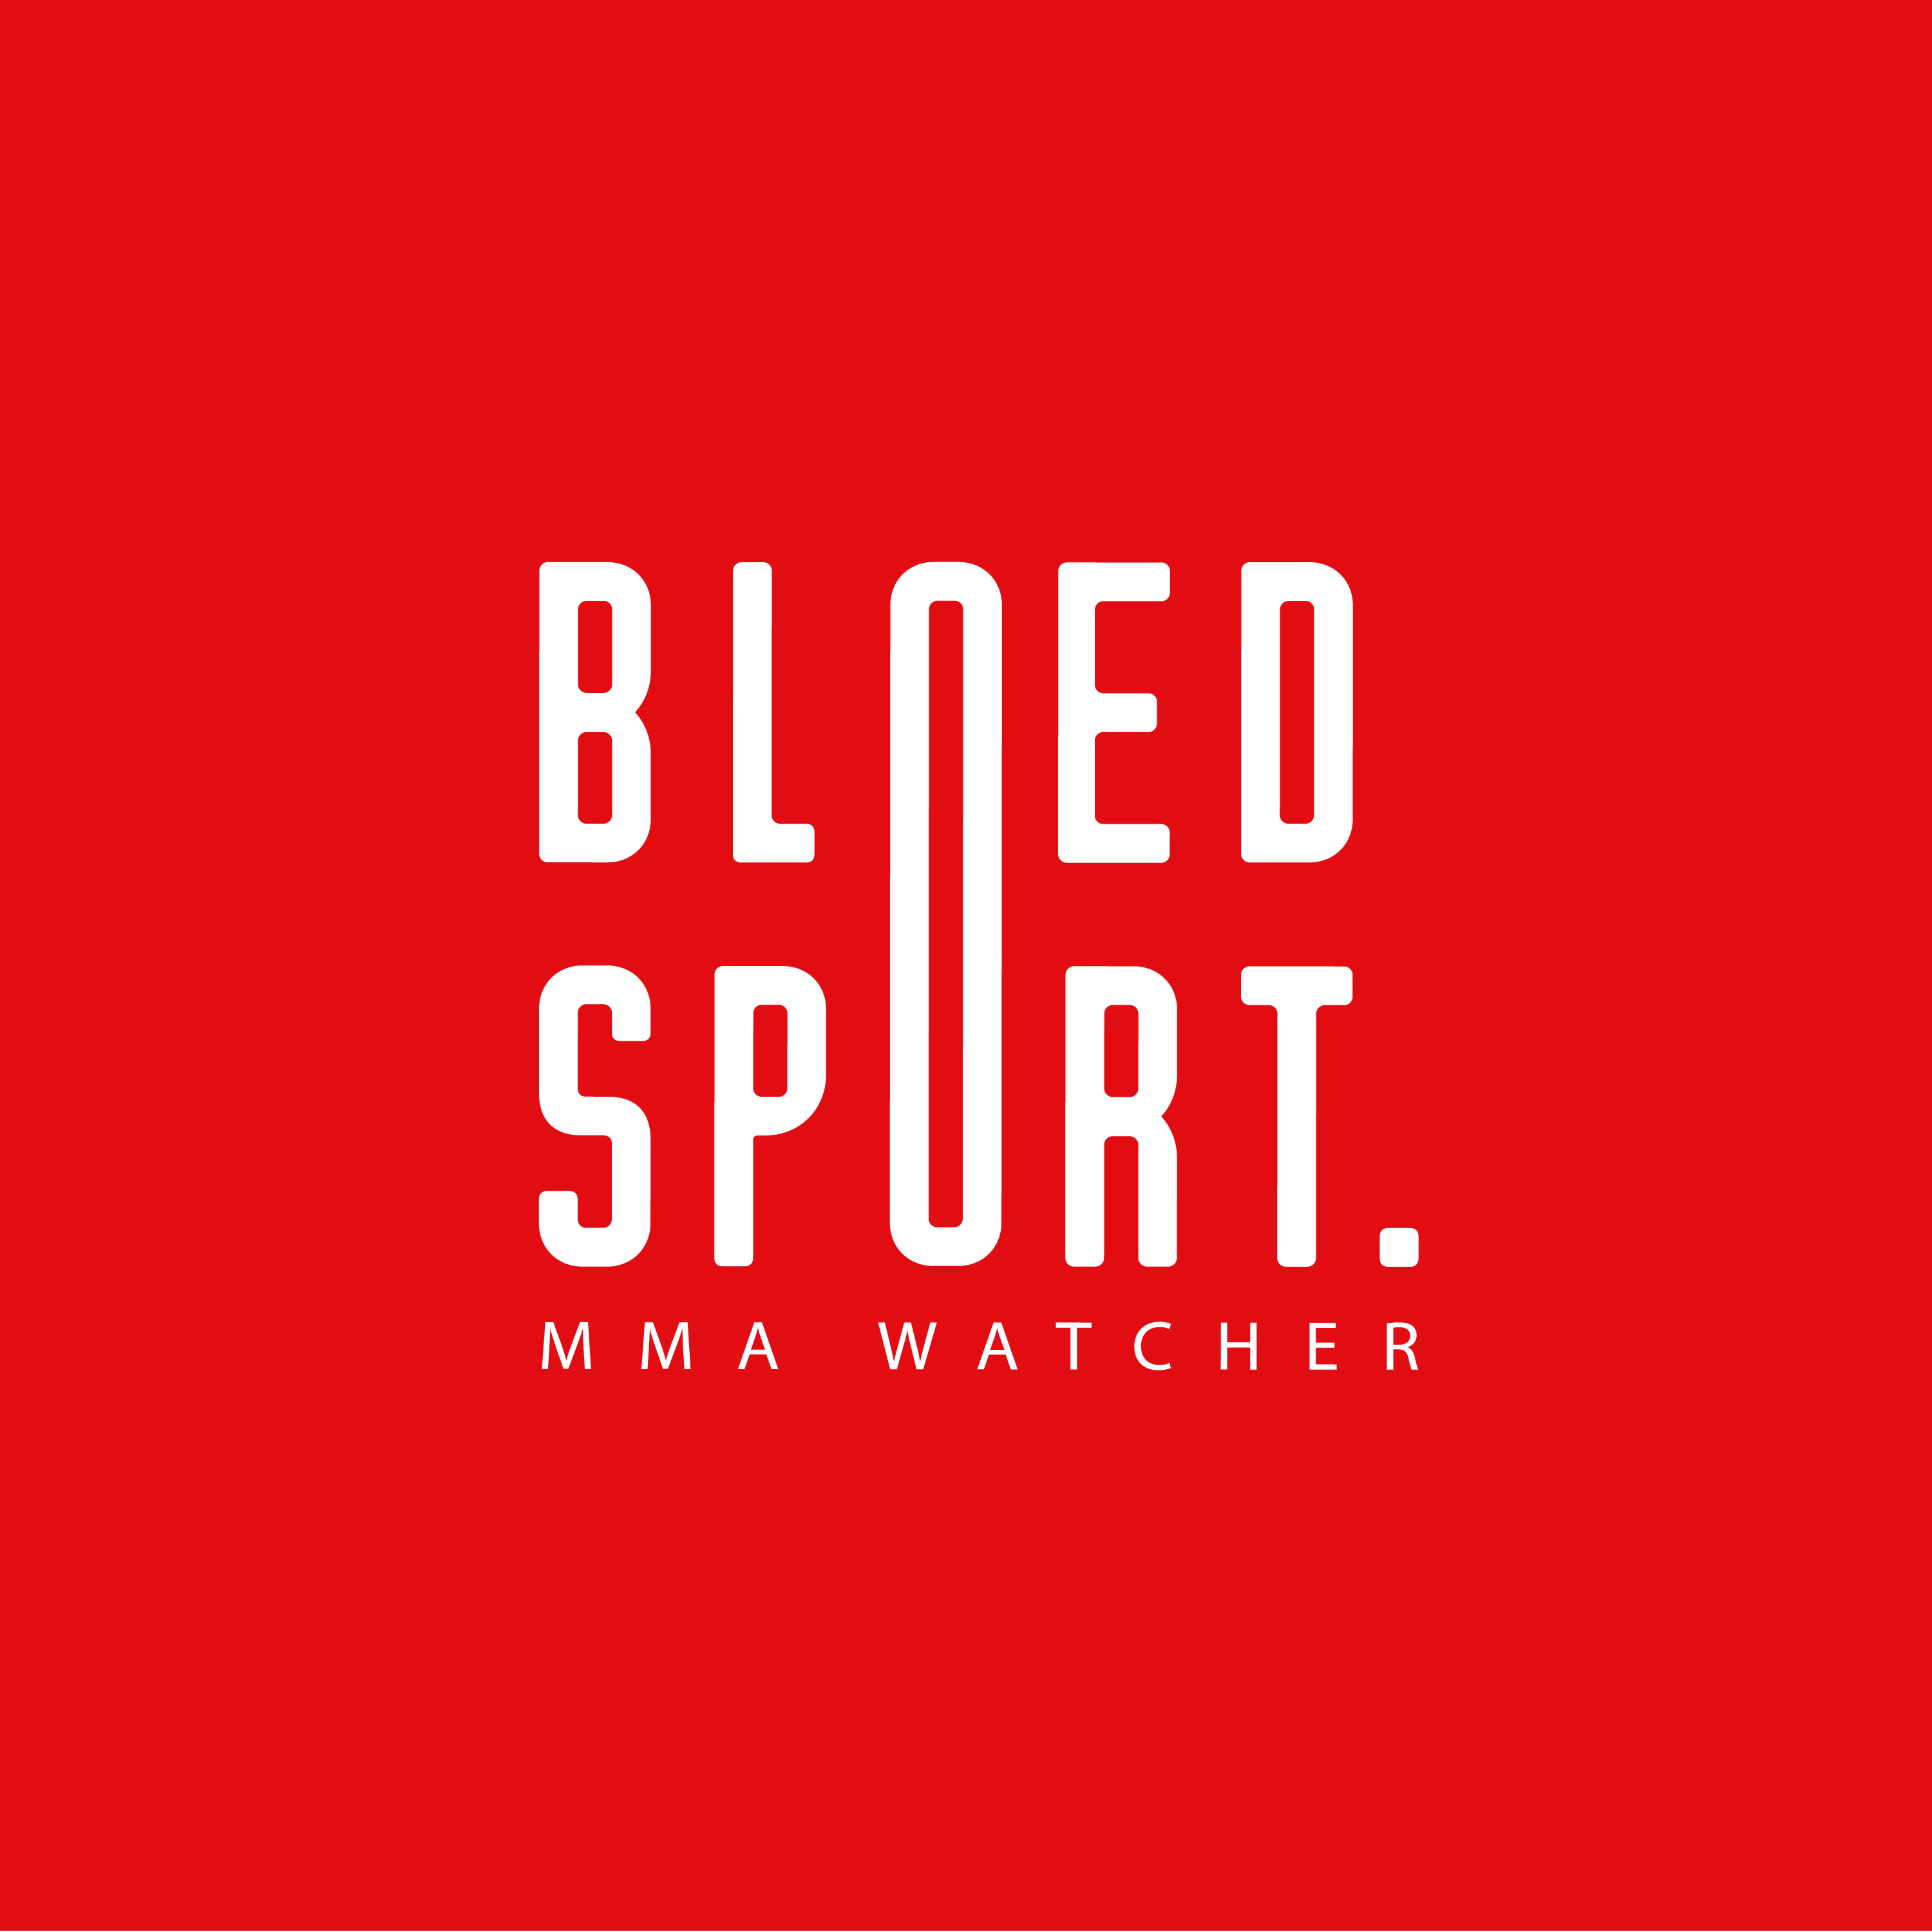 Bloedsport MMA Watcher podcast logo